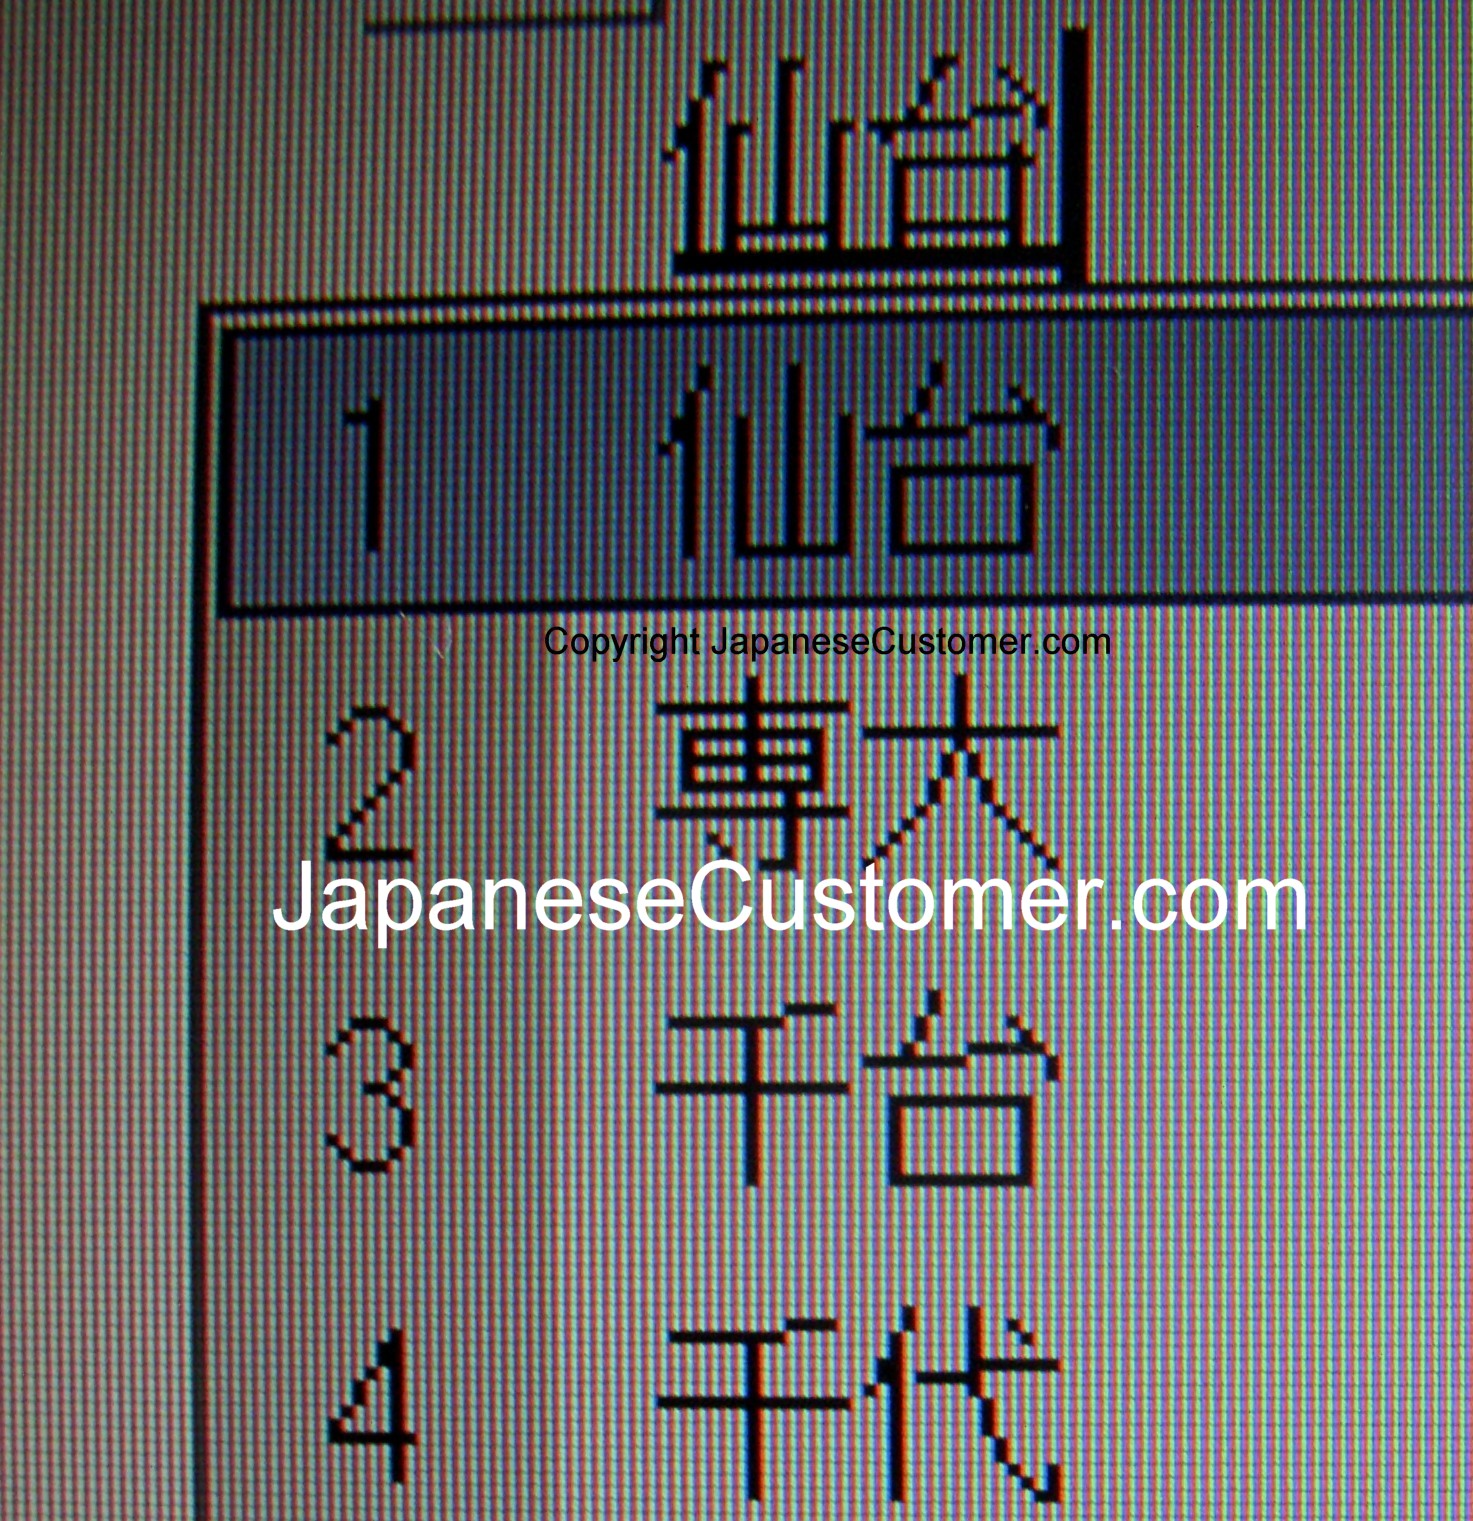 Looking up Japanese characters Copyright Peter Hanami 2014